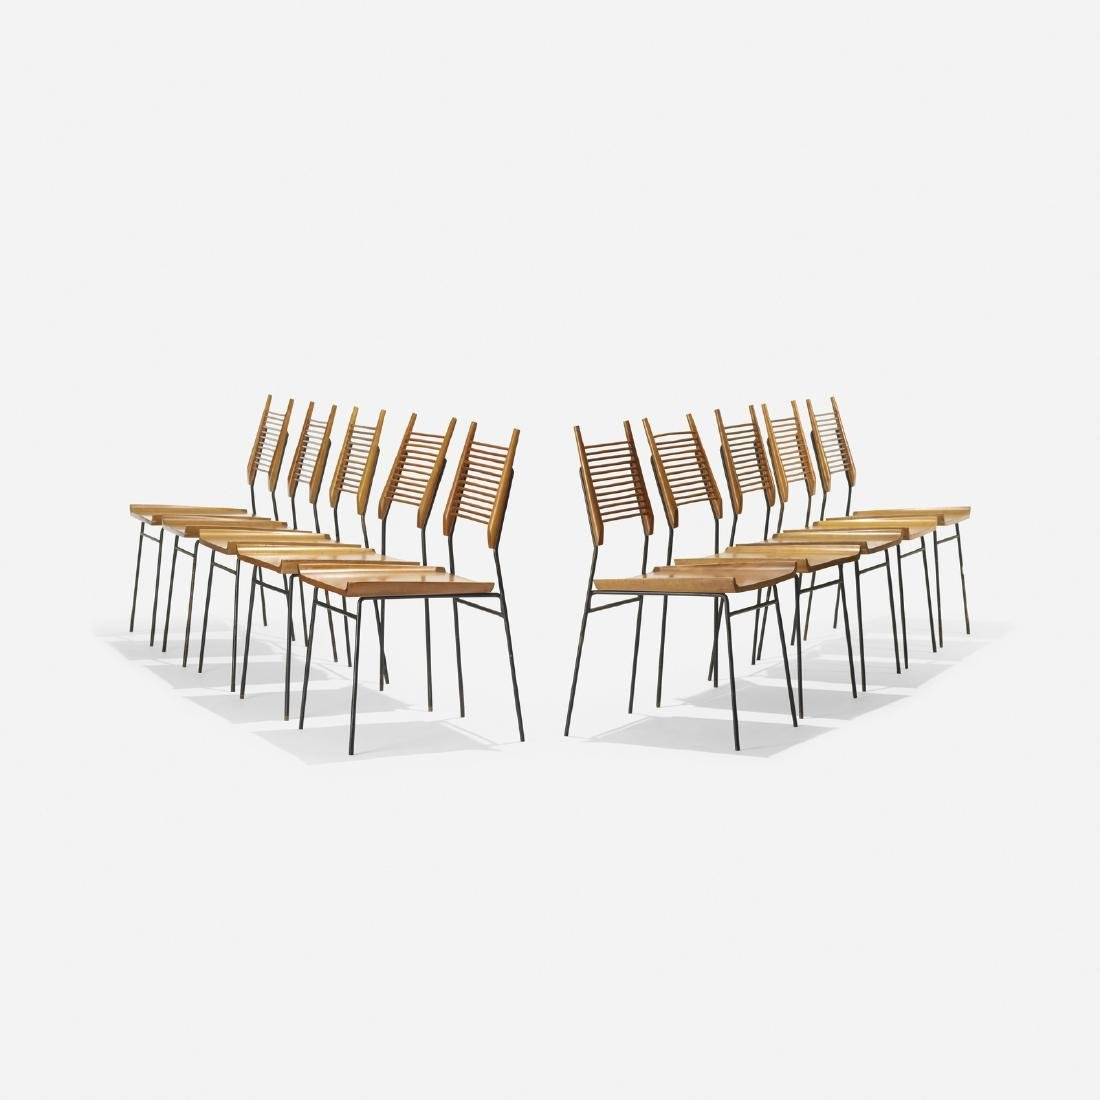 Paul McCobb, Planner Group dining chairs, set of 10